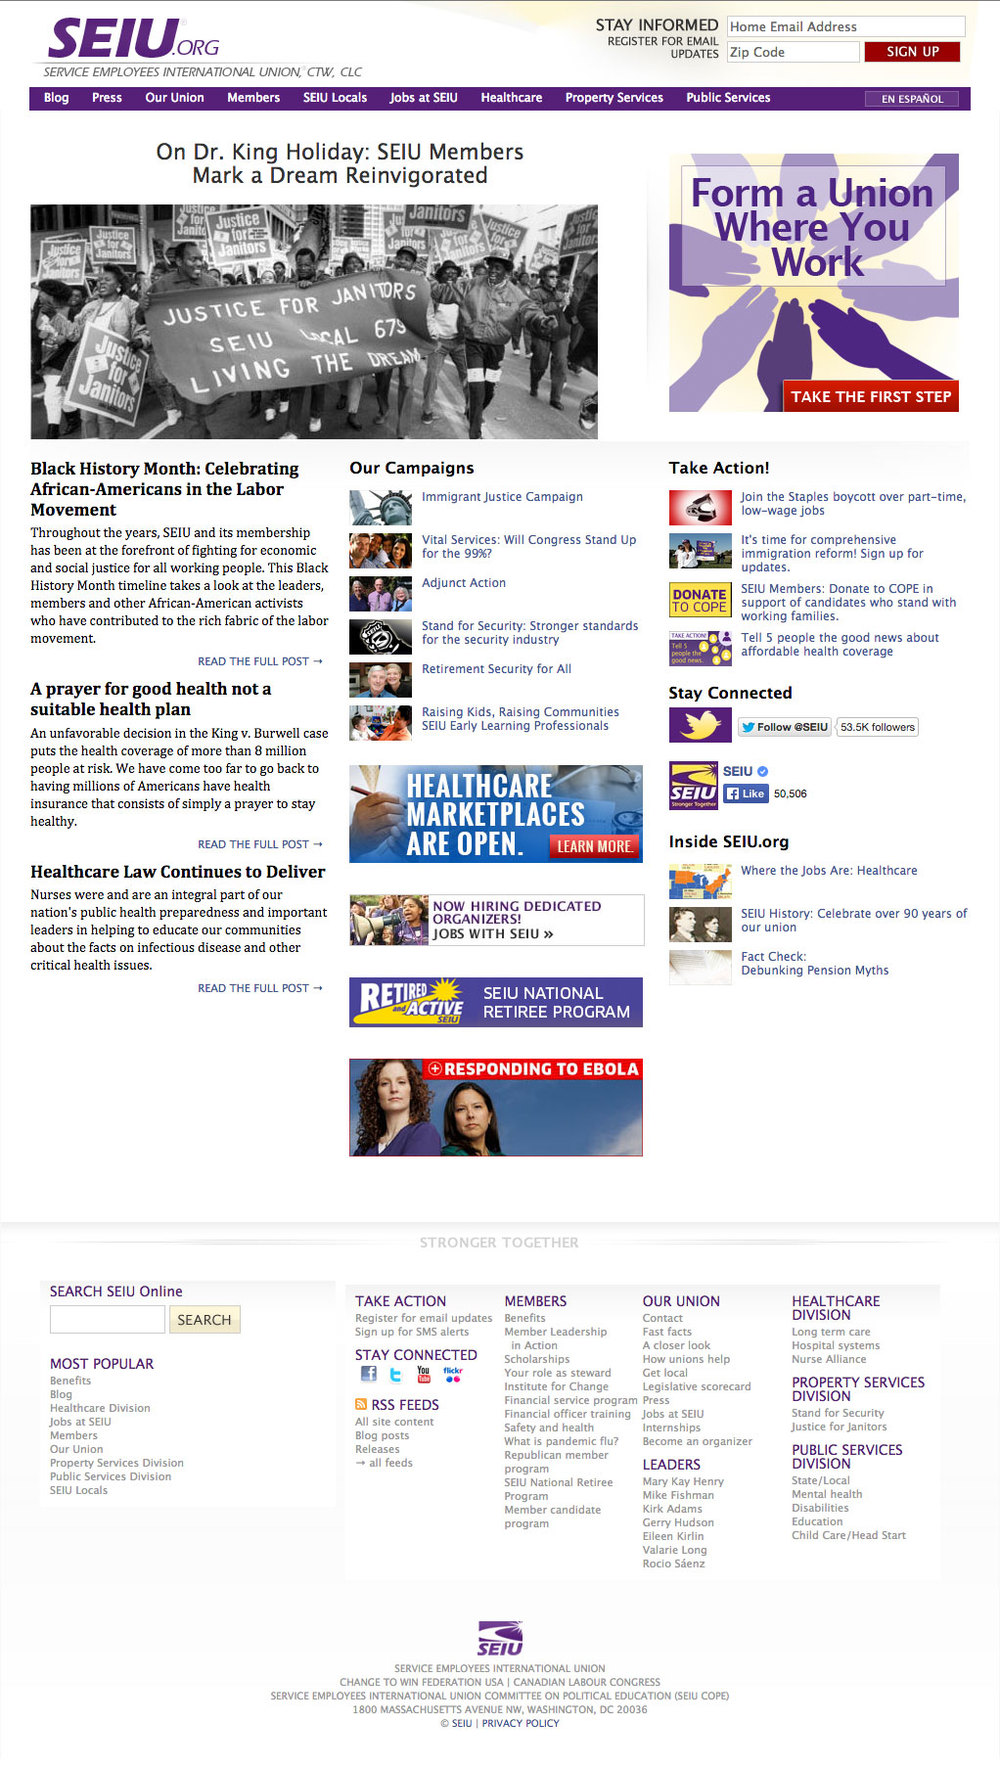 Redesigned SEIU.org with emphasis on action steps and concise access to the top priority activities of the busy 2 million member economic justice nonprofit.